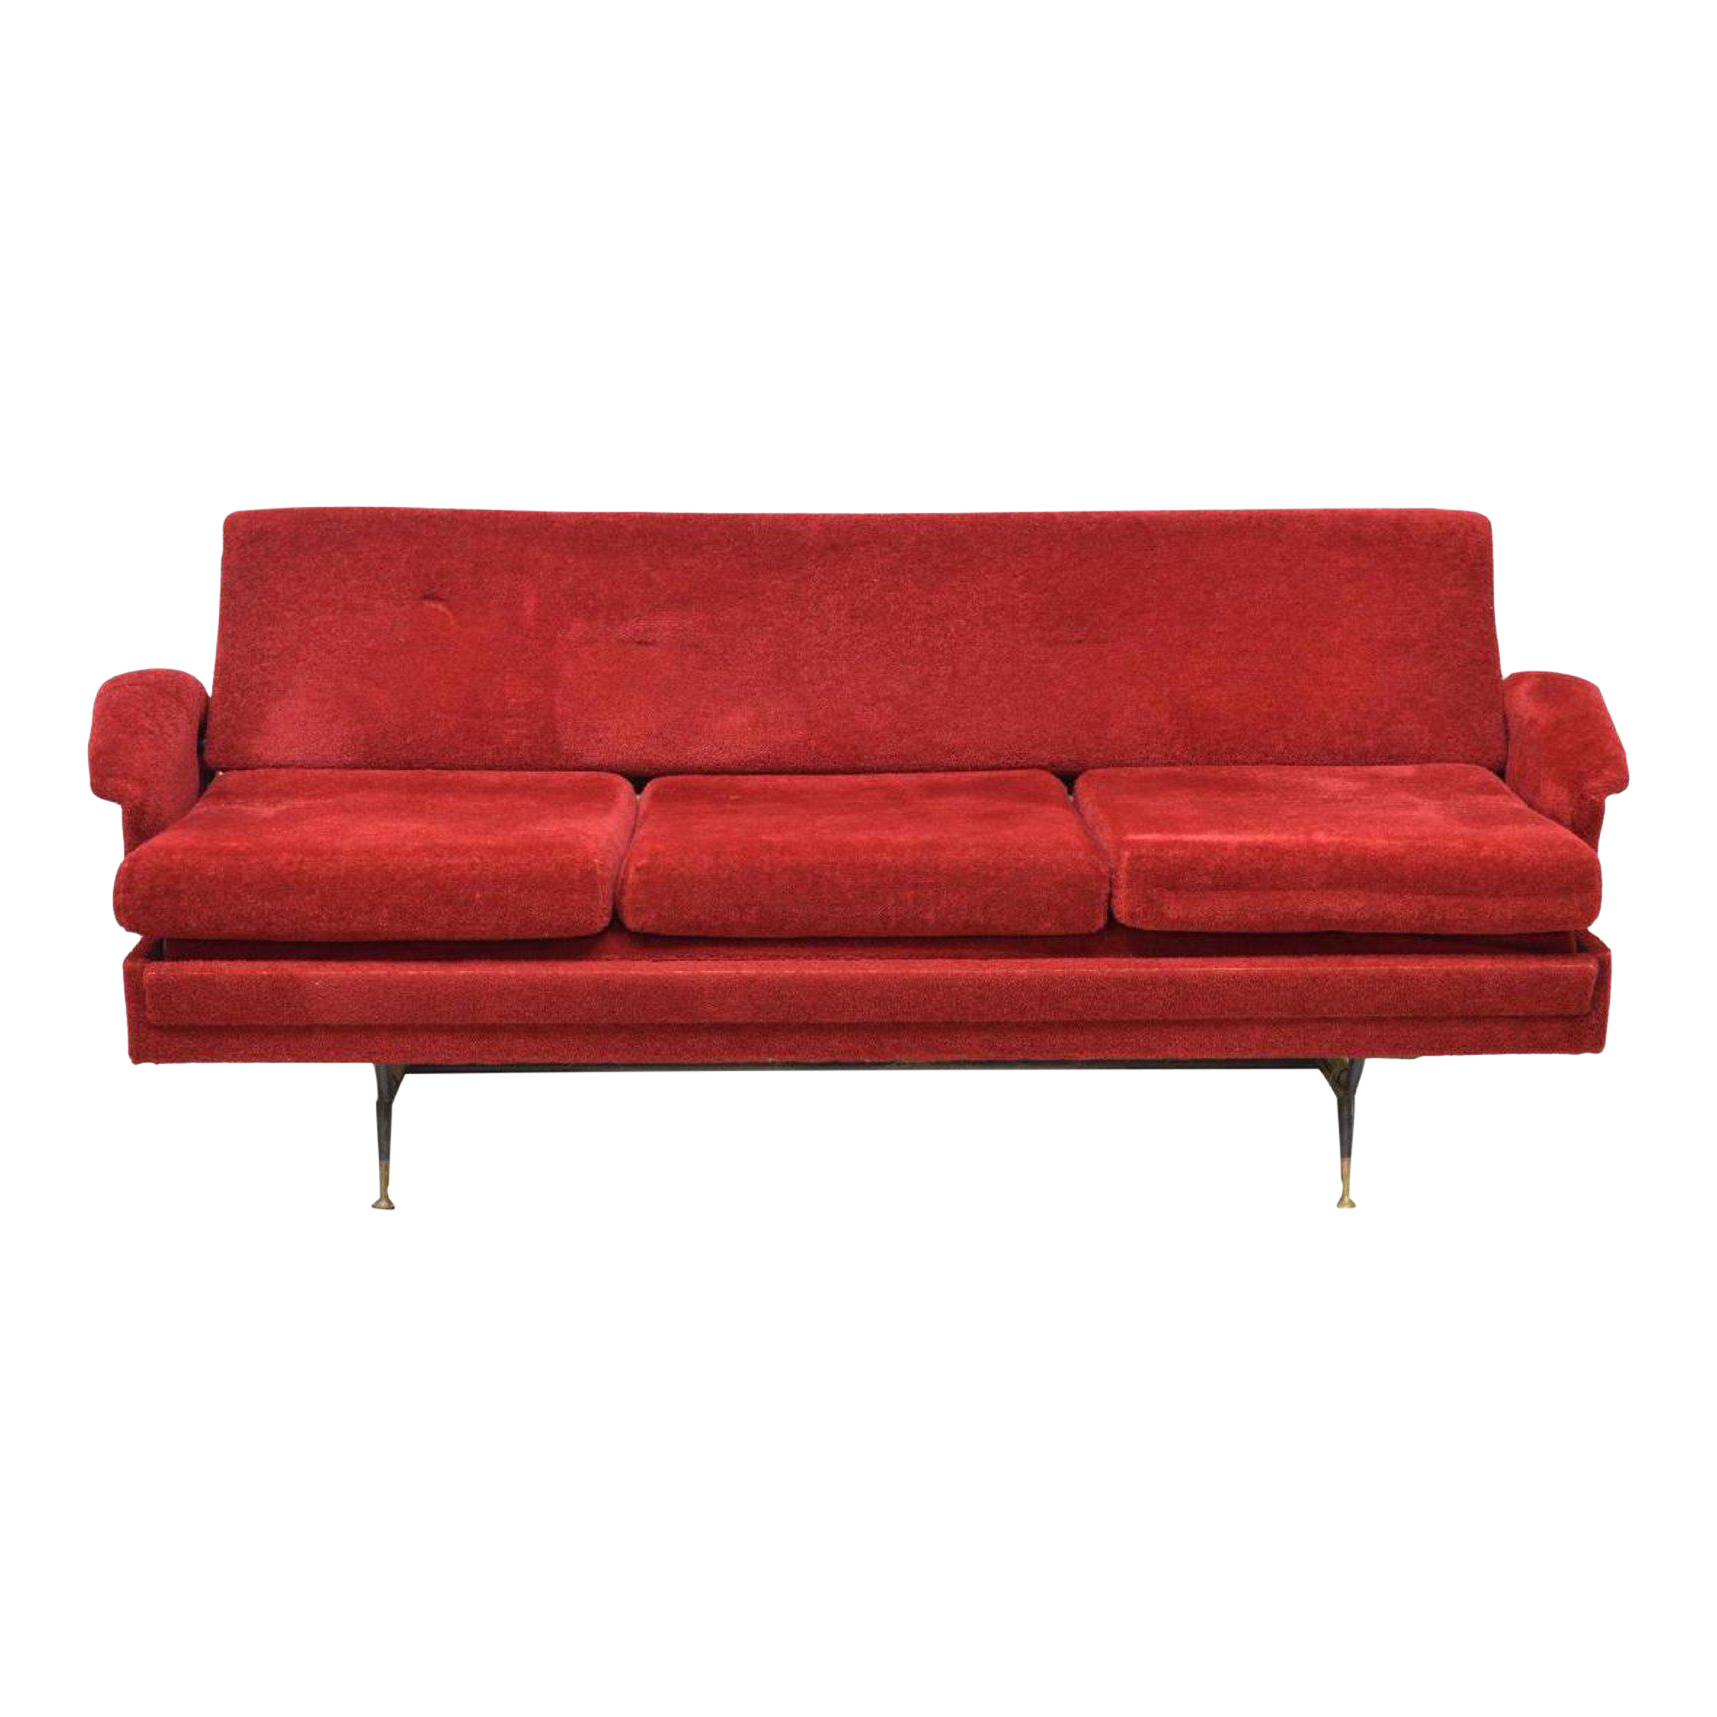 1960u0027s Italian Mid Century Modern Red Sofa Bed